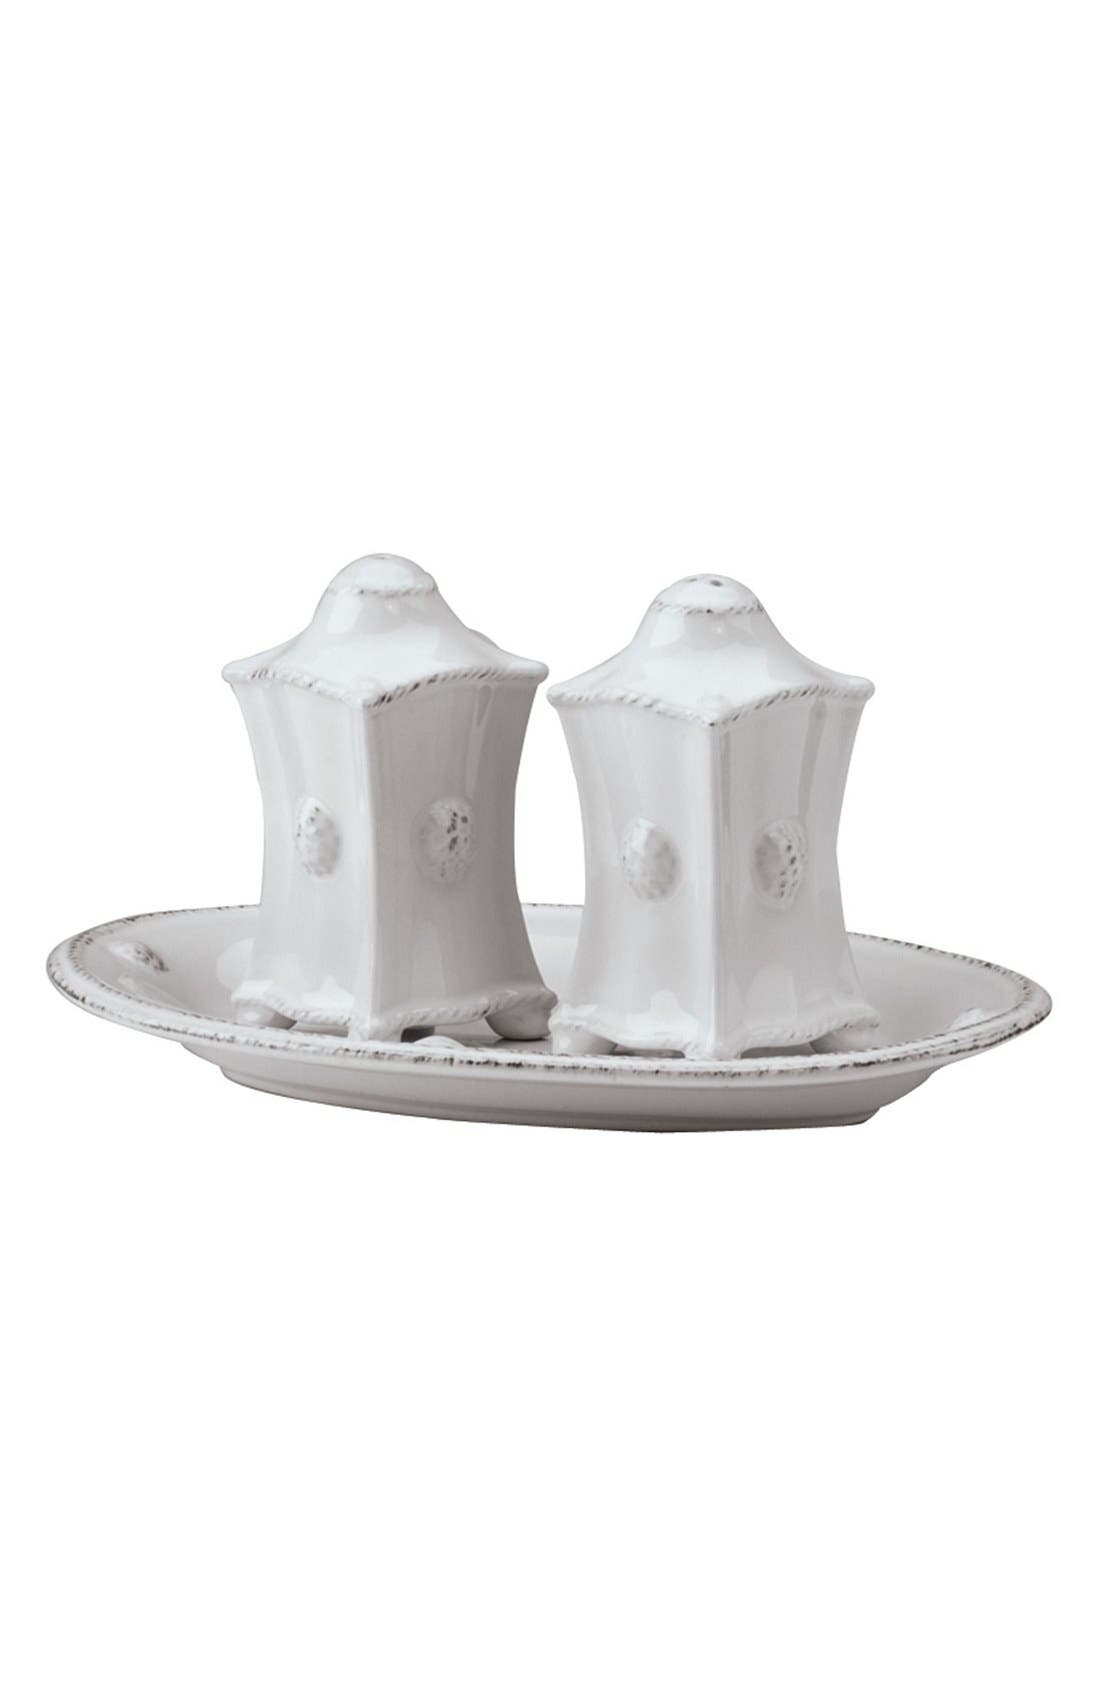 'Berry and Thread' CeramicSalt & Pepper Shakers,                             Main thumbnail 1, color,                             100